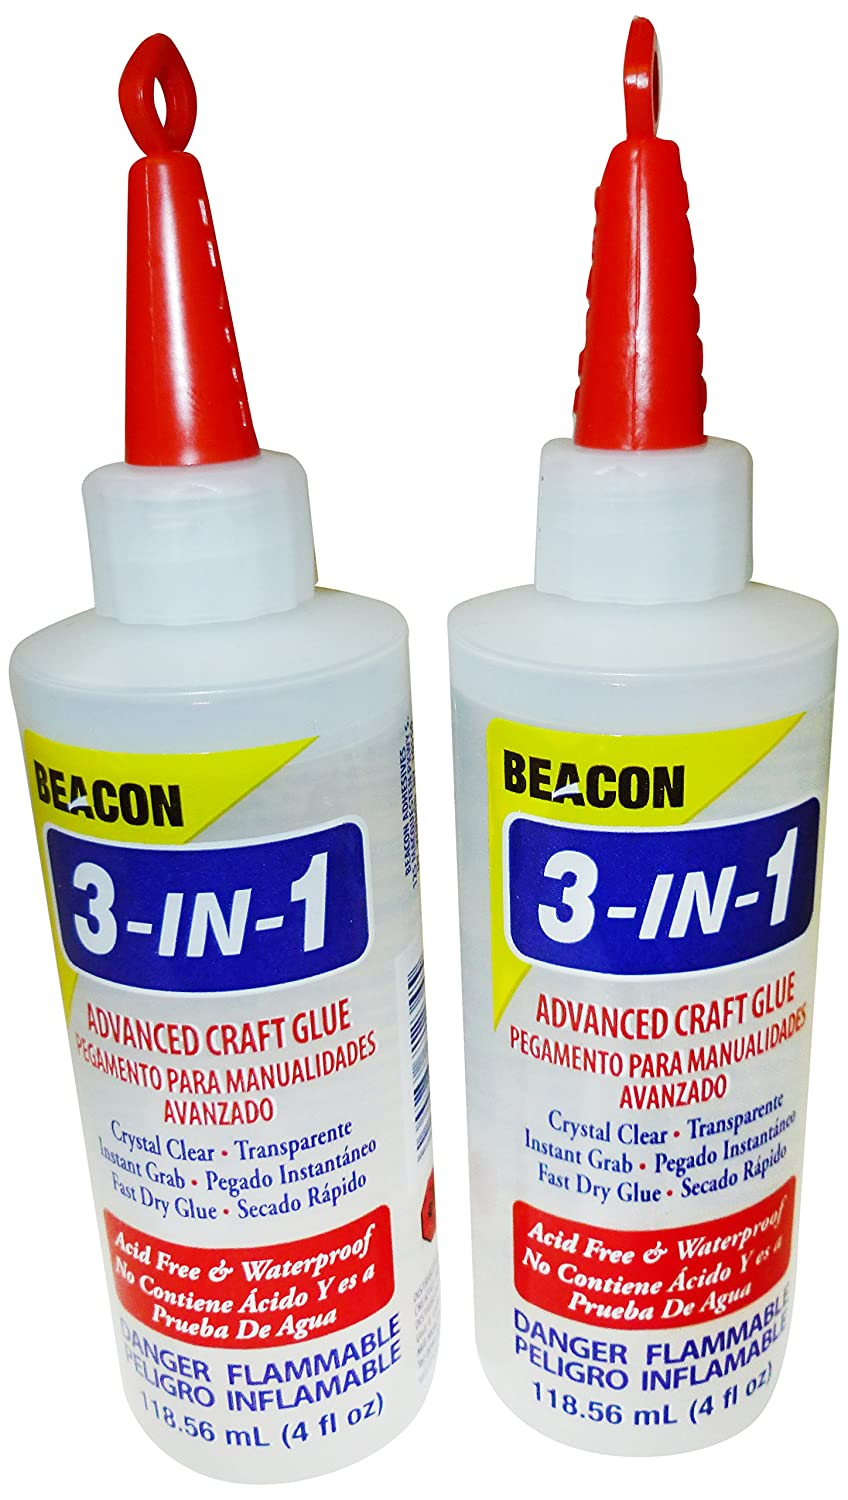 Beacon Adhesives 118 ml 3-in-1 Advanced Craft Glue, Set of 2 314OZDOUBLEUK